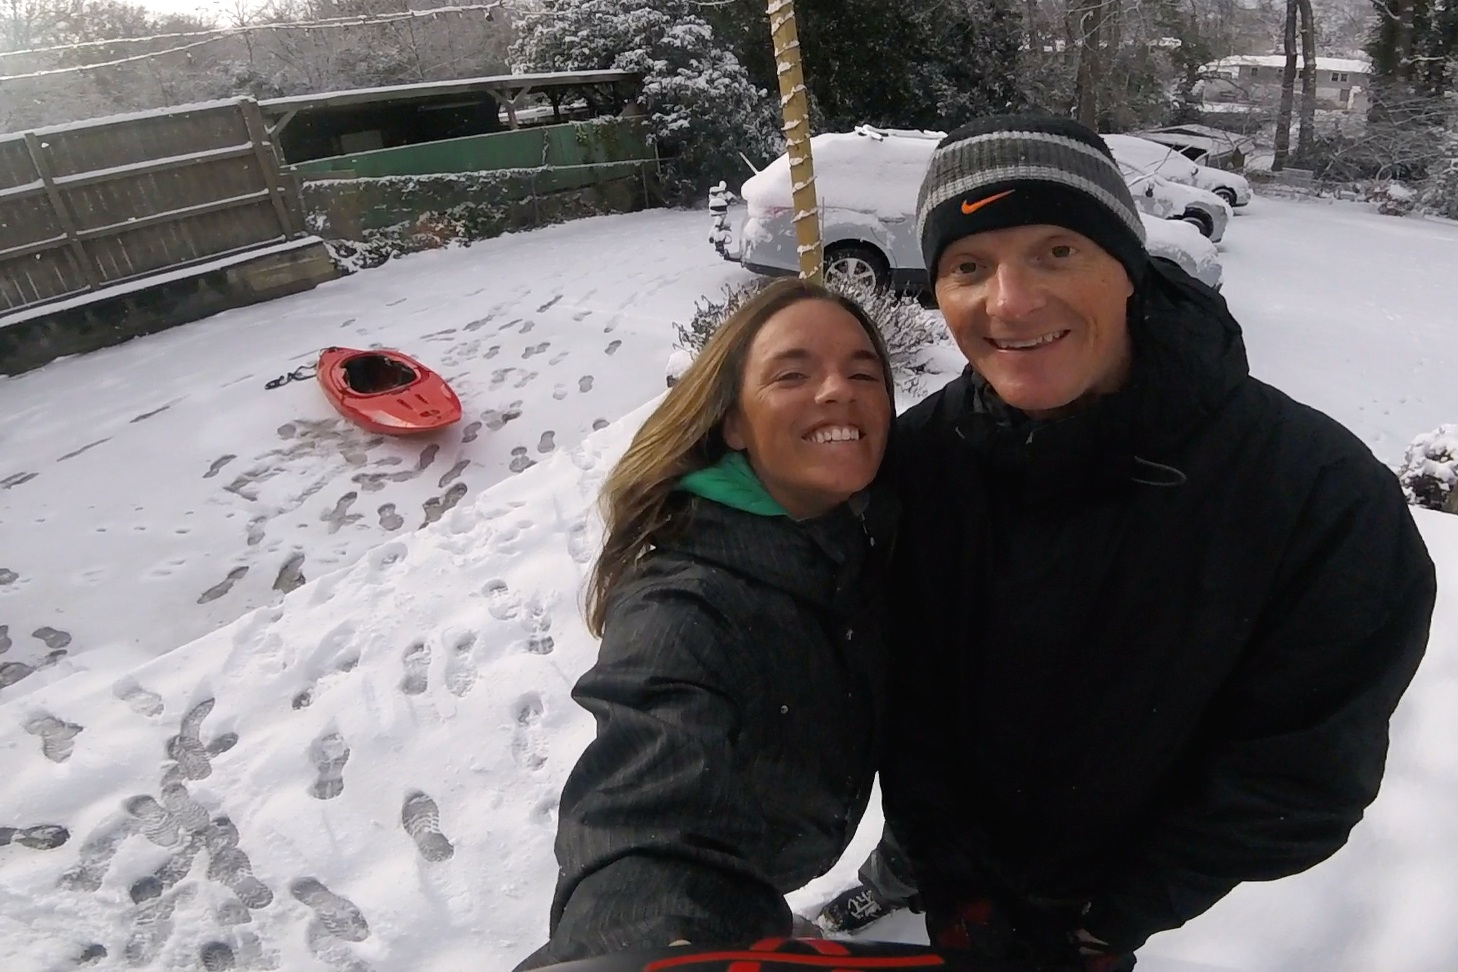 I got a few days of snow between Costa Rica and Uganda though!